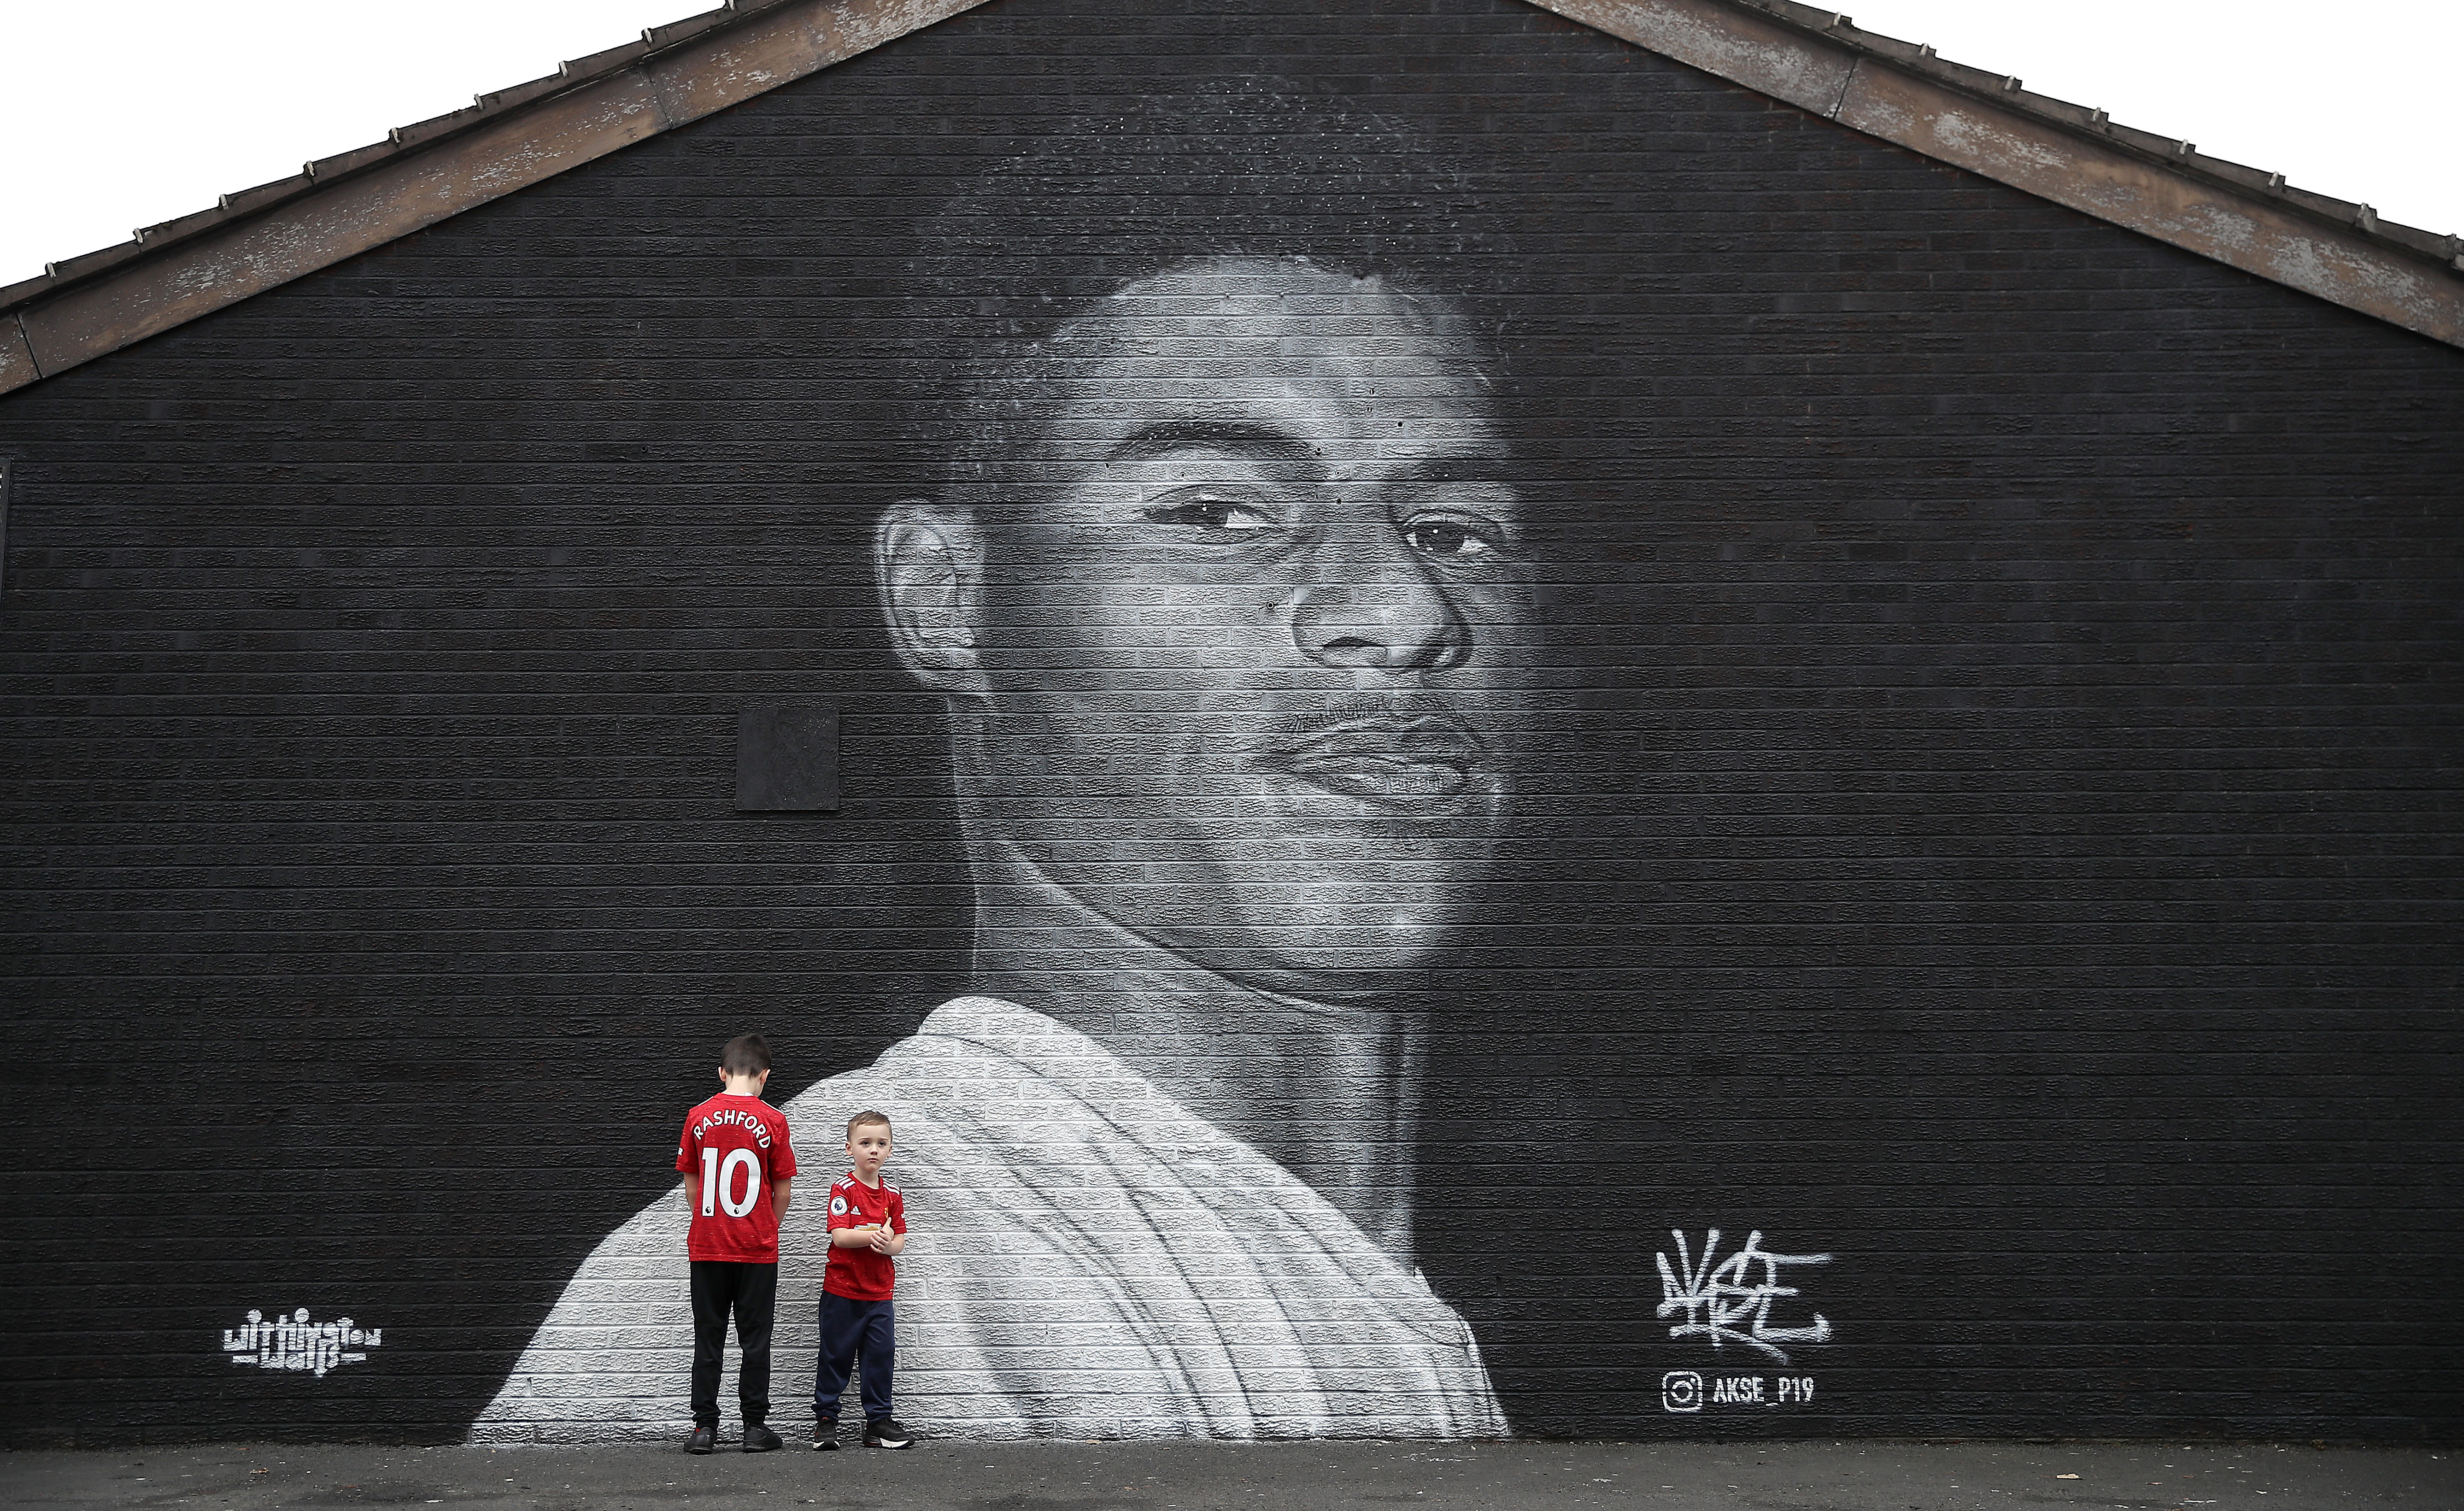 Marcus Rashford Mural in Manchester with two children standing next to it